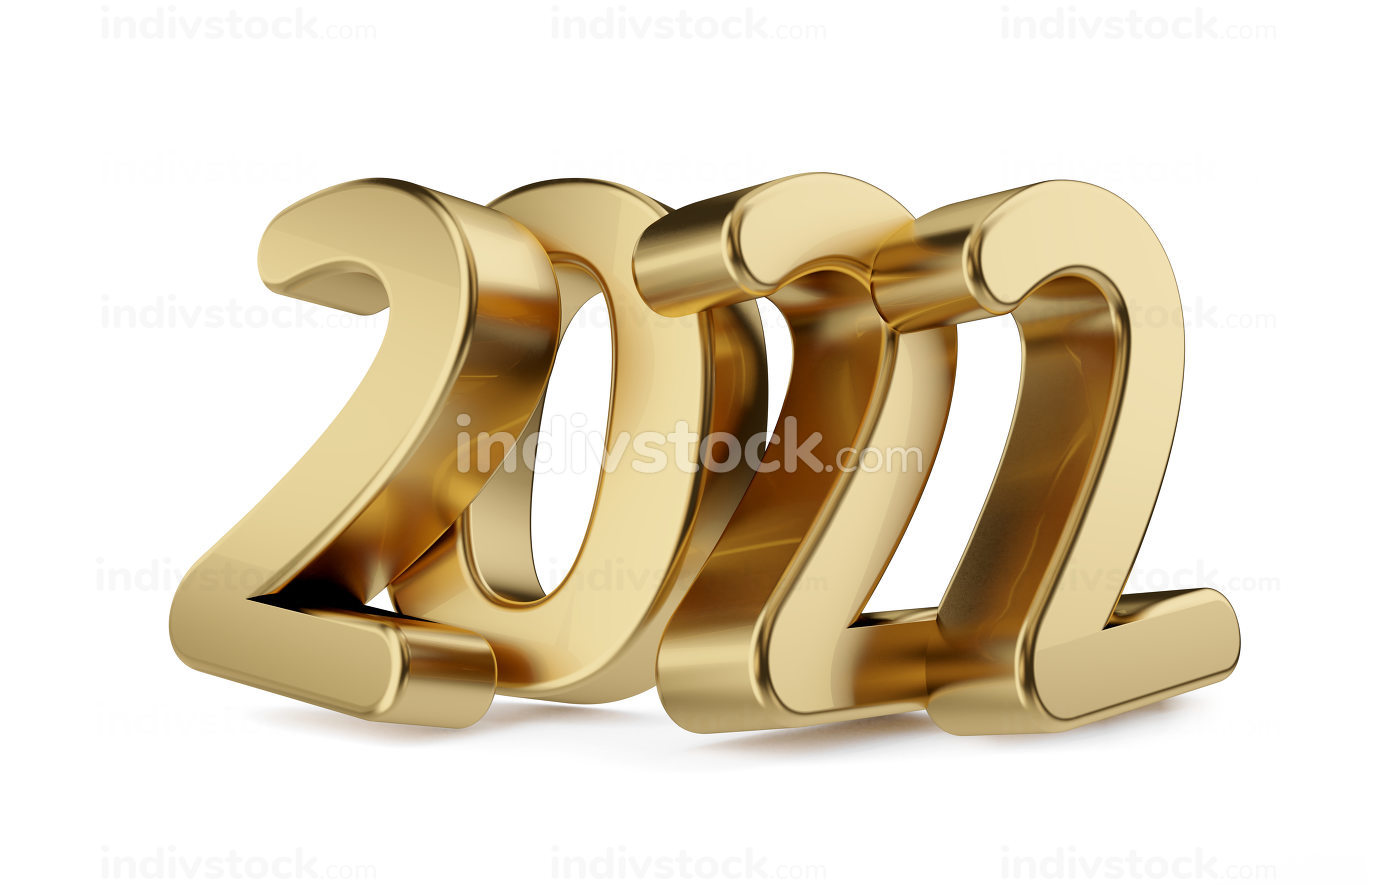 2022 golden bold letters isolated 3d-illustration